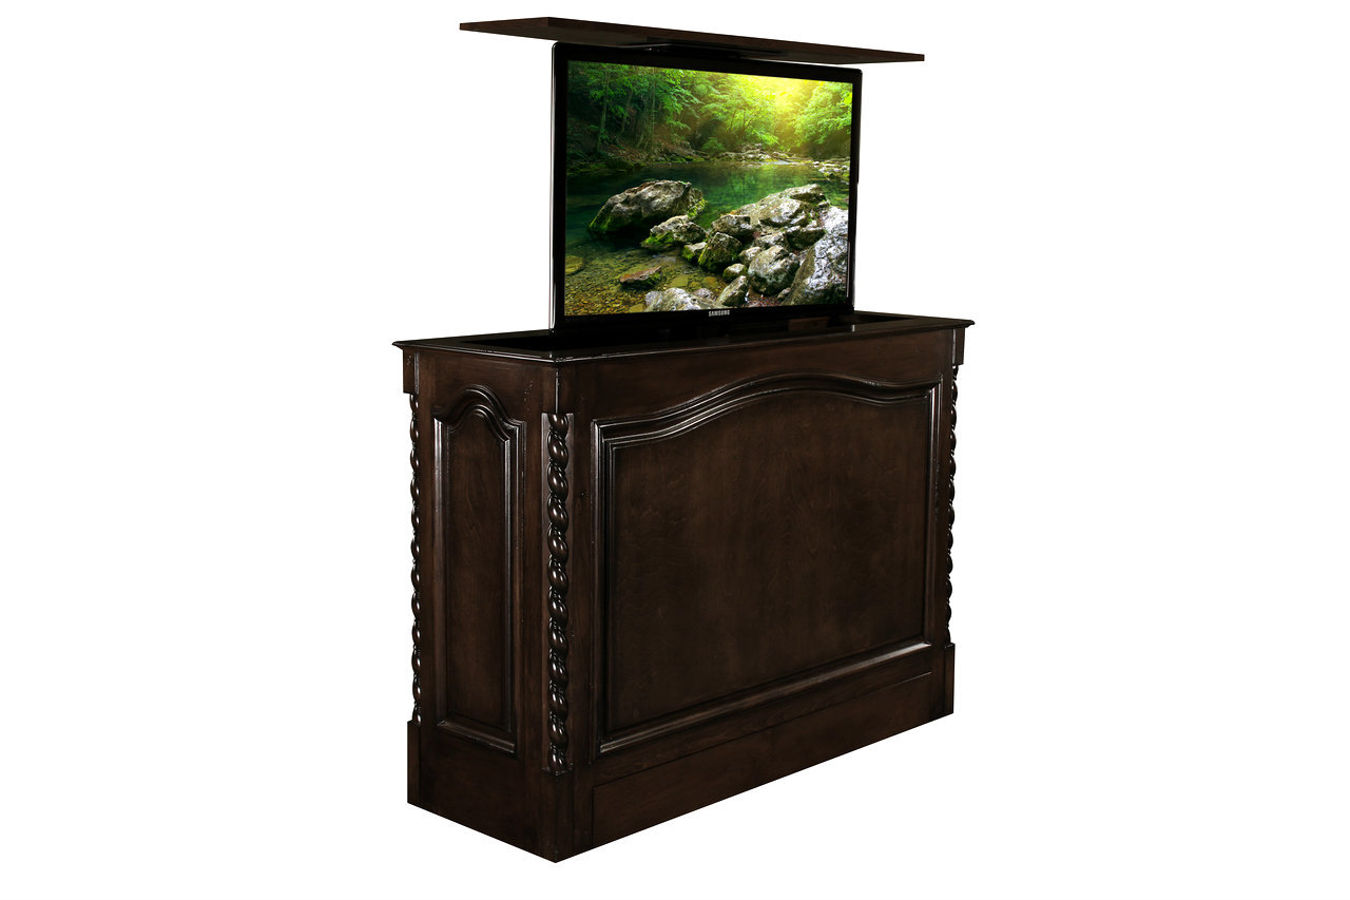 Coronado french walnut is a designer grade automated TV Lift console furniture is US Made and comes with a 10 year warranty. This retracts flat screens up to 65 inch.